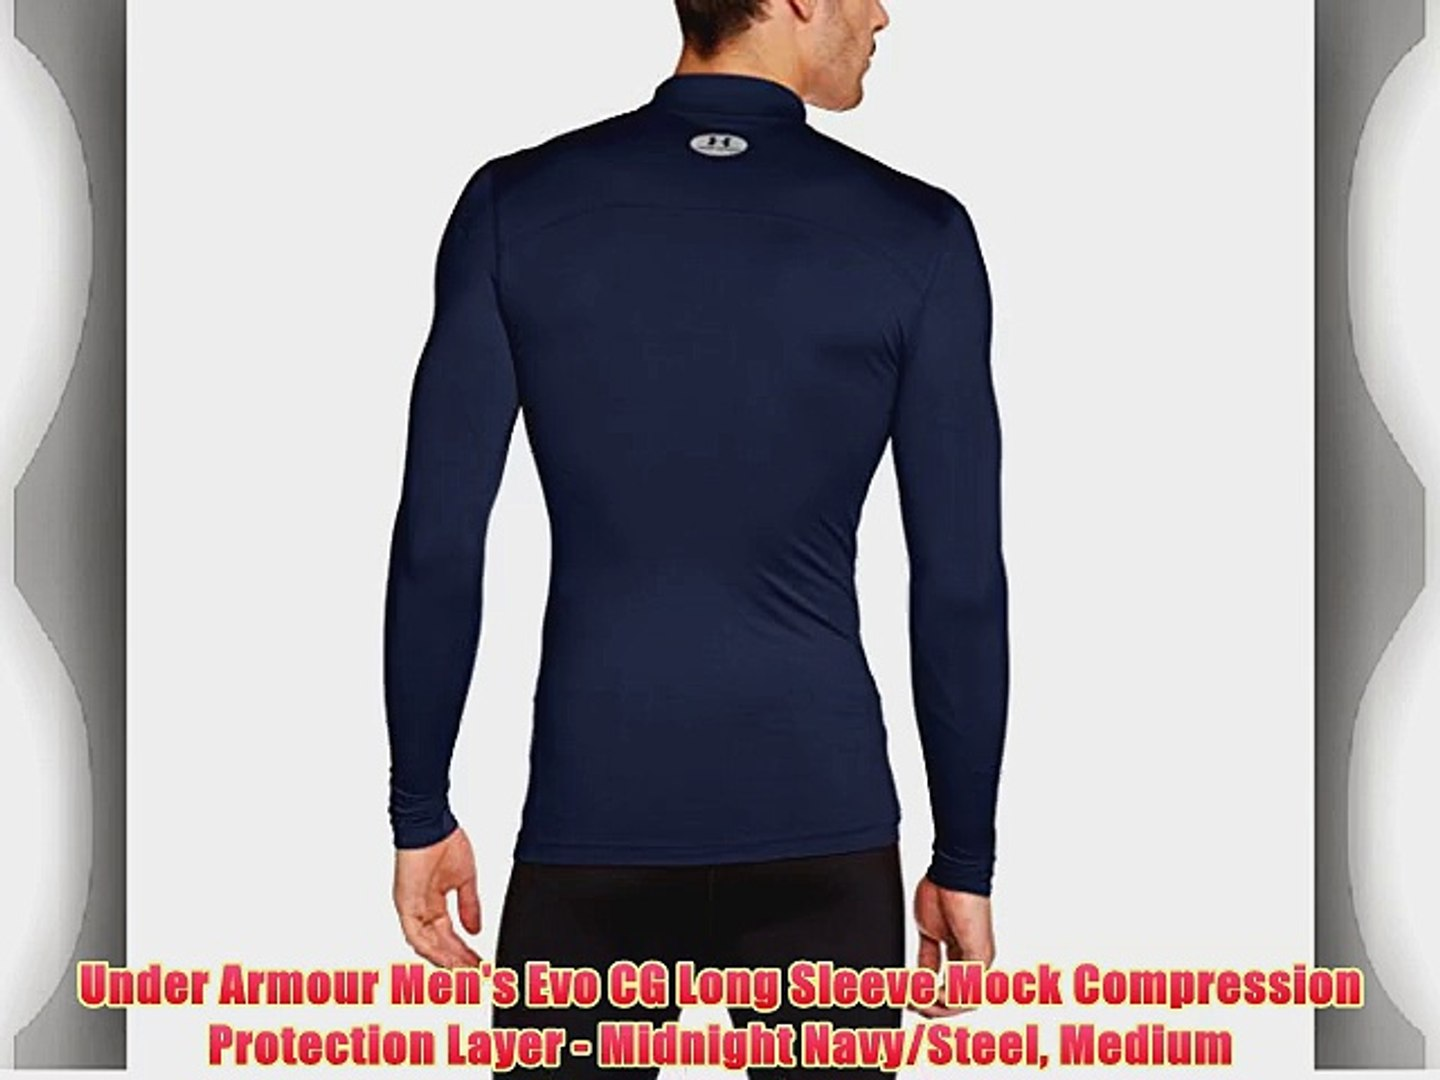 Under Armour Mens Evo CG Compression Hybrid Protection Layer